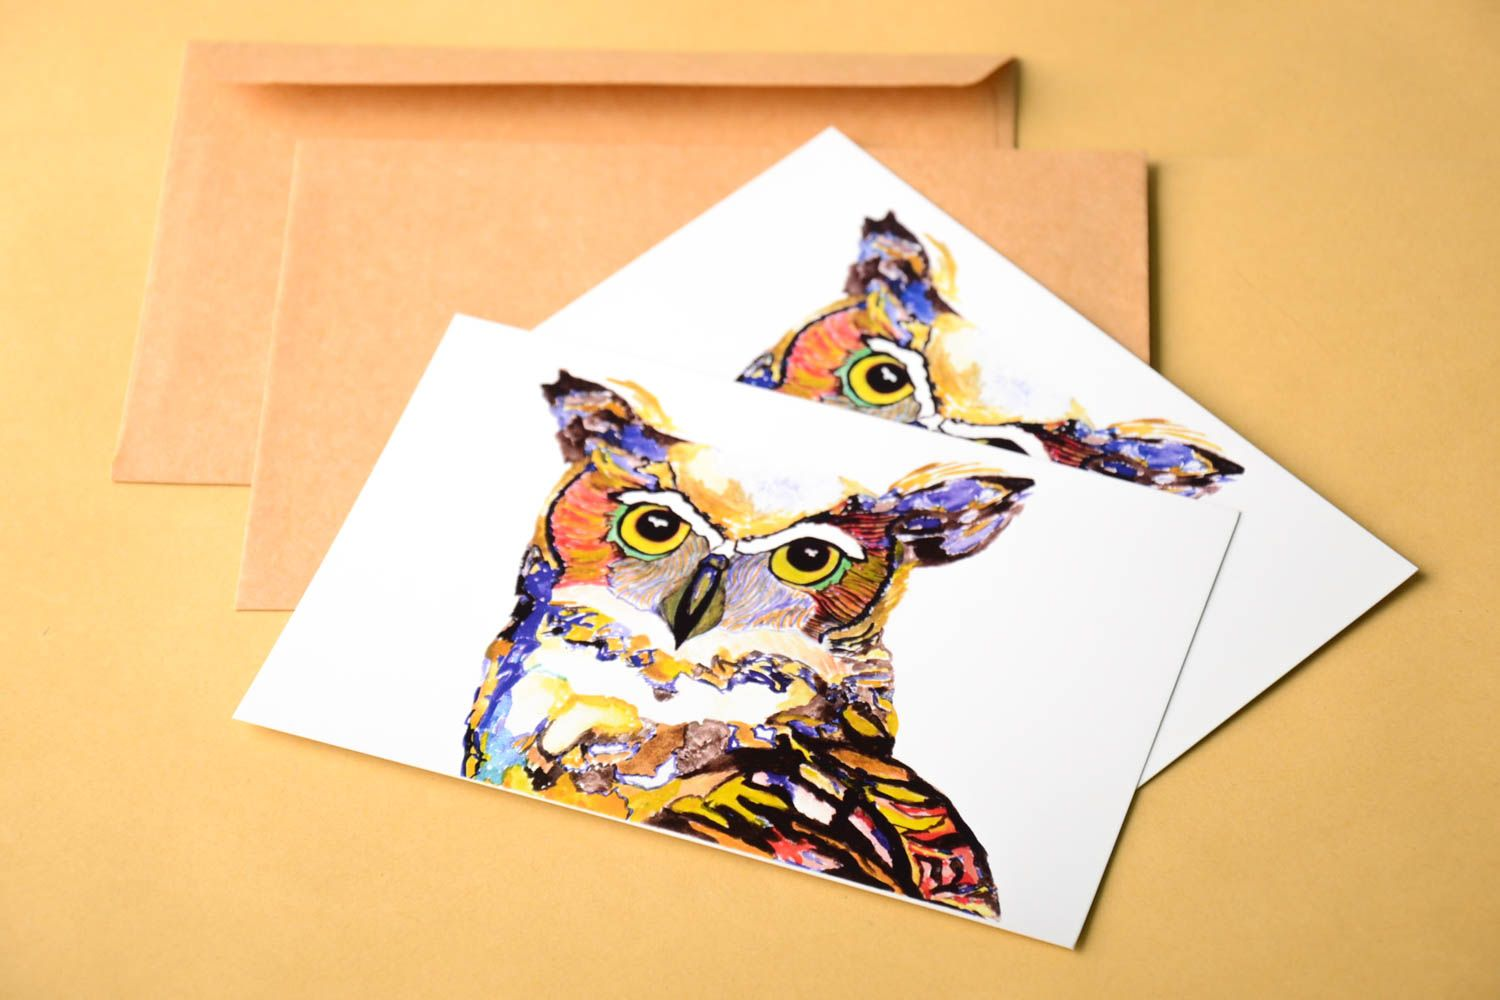 Handmade cards unusual gift designer card collectible greeting card 2 items photo 1